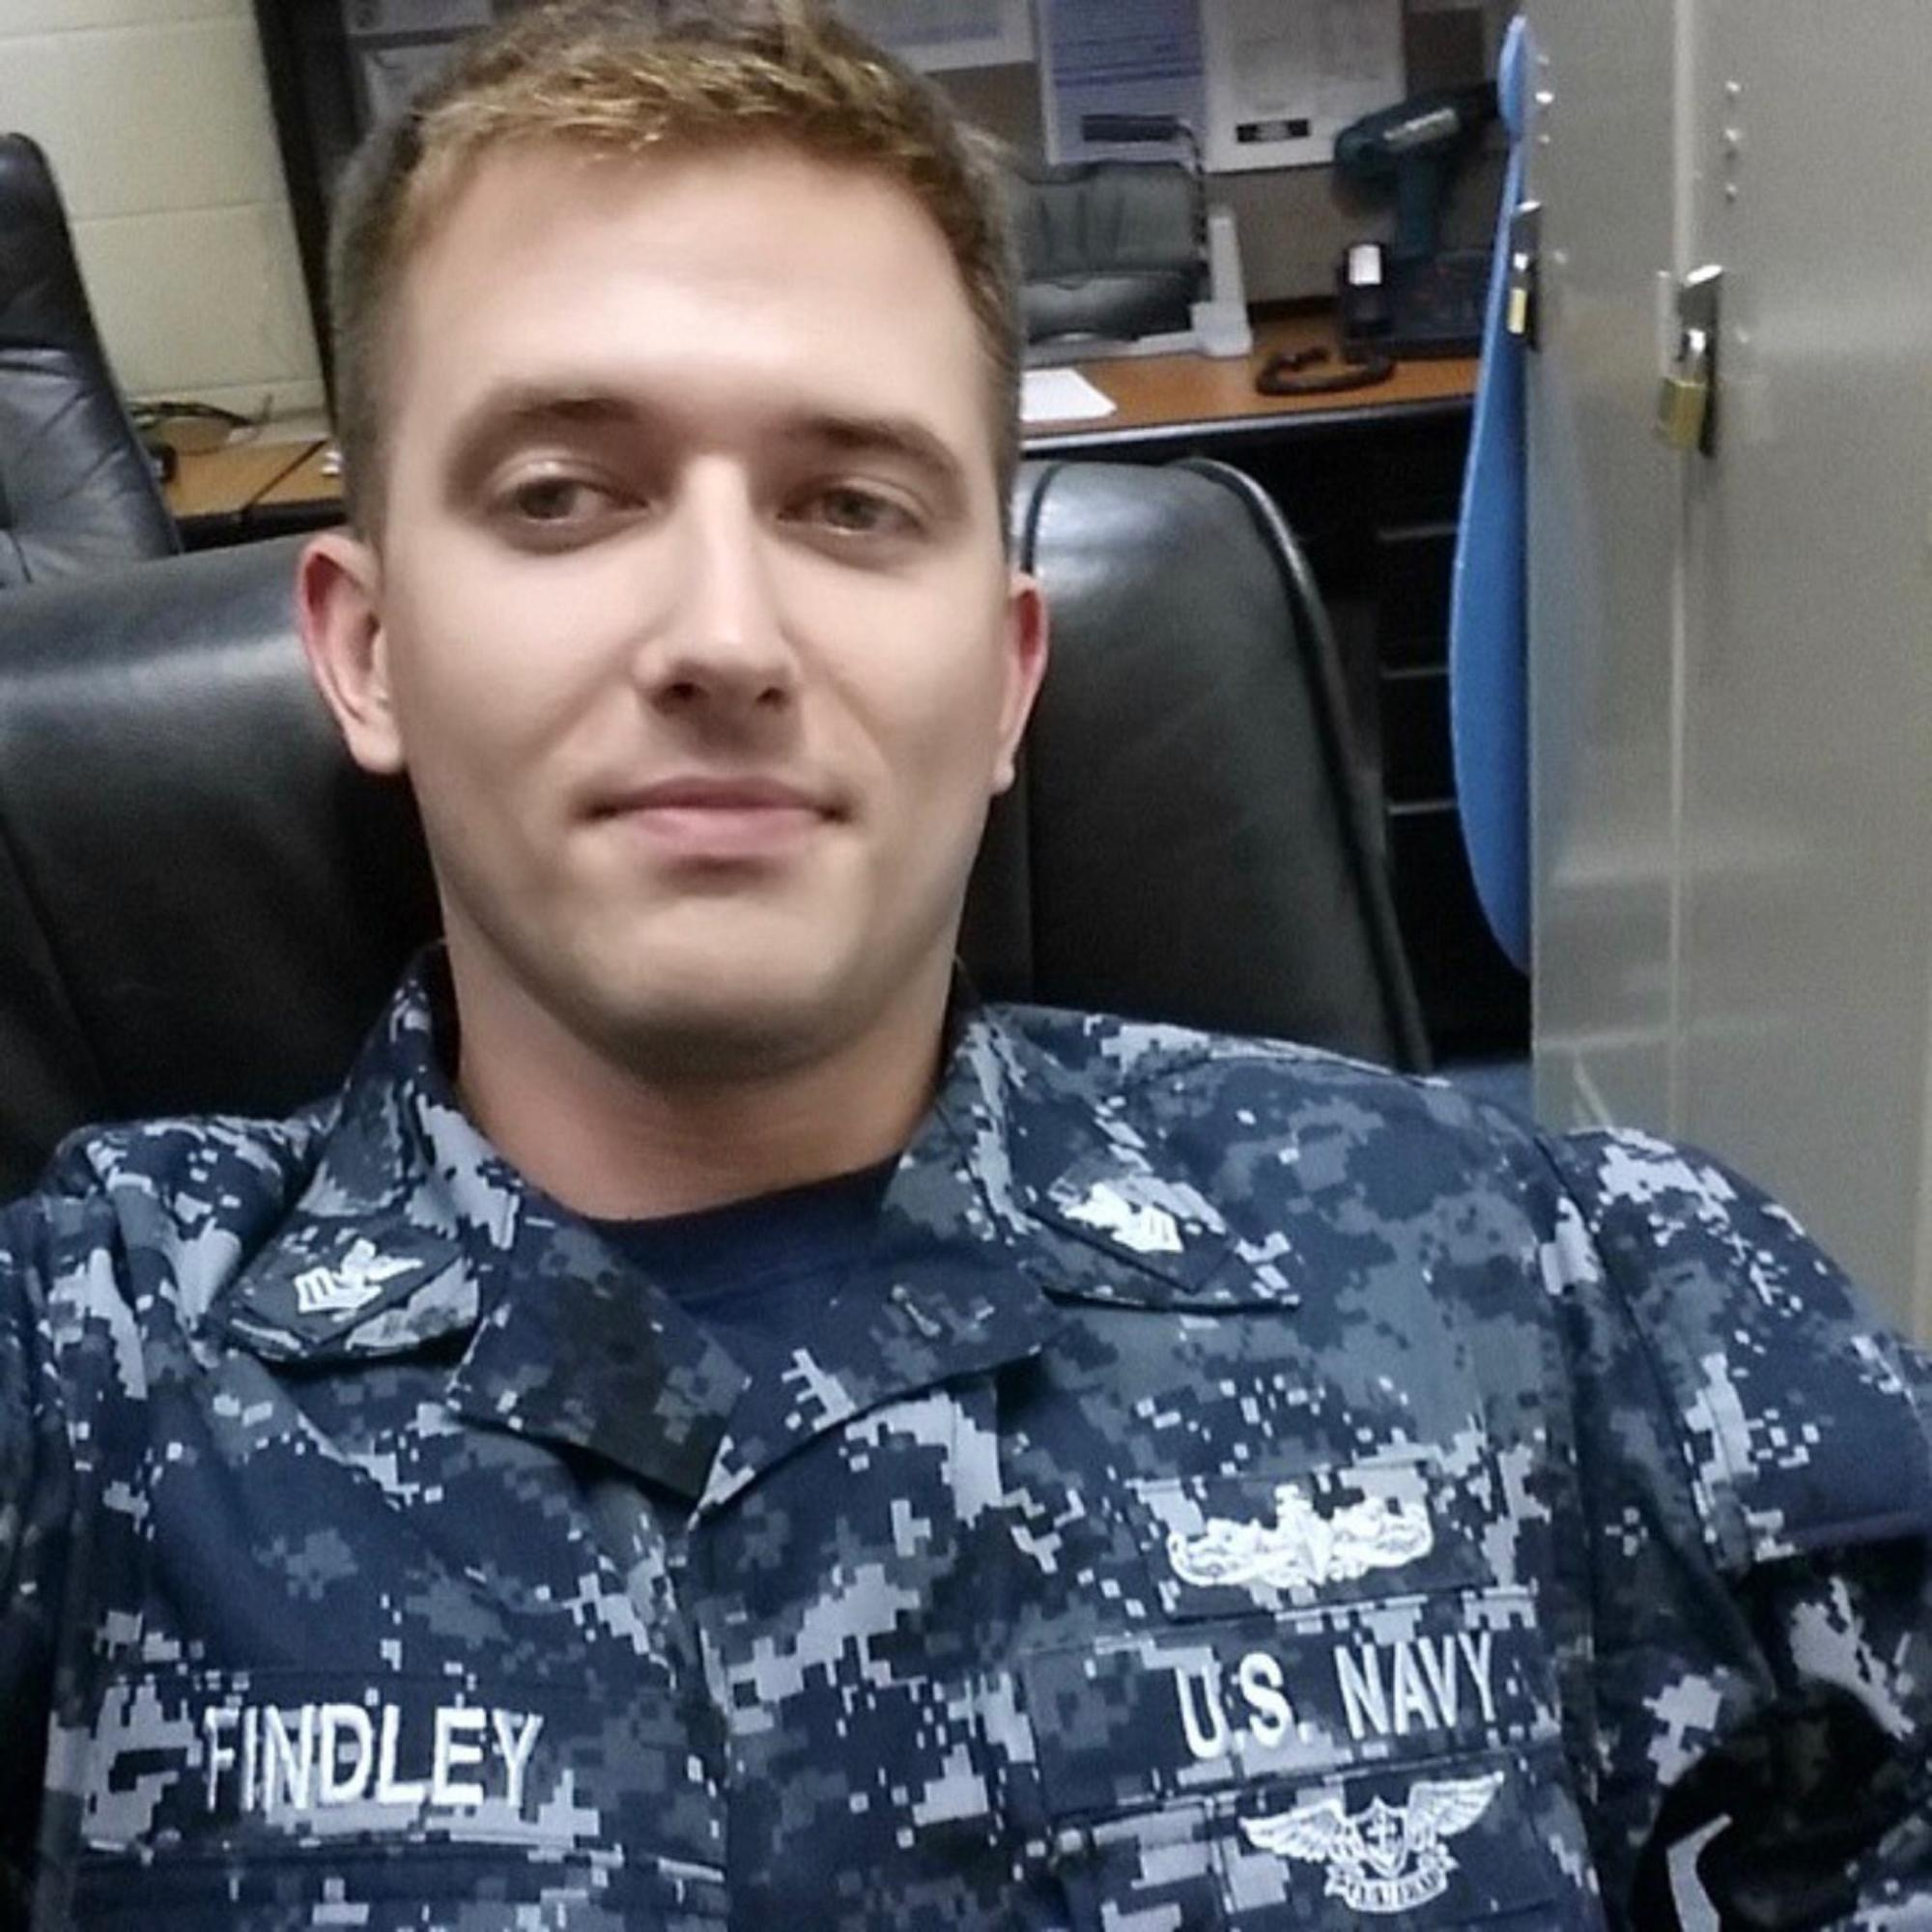 This undated photo provided by the U.S. Navy shows Electronics Technician 1st Class Charles Nathan Findley, of Missouri. Findley was stationed aboard USS John S. McCain when it collided with an oil tanker near Singapore on Monday, Aug. 21, 2017. He was identified as missing on Aug. 24. (Findley Family/U.S. Navy via AP)